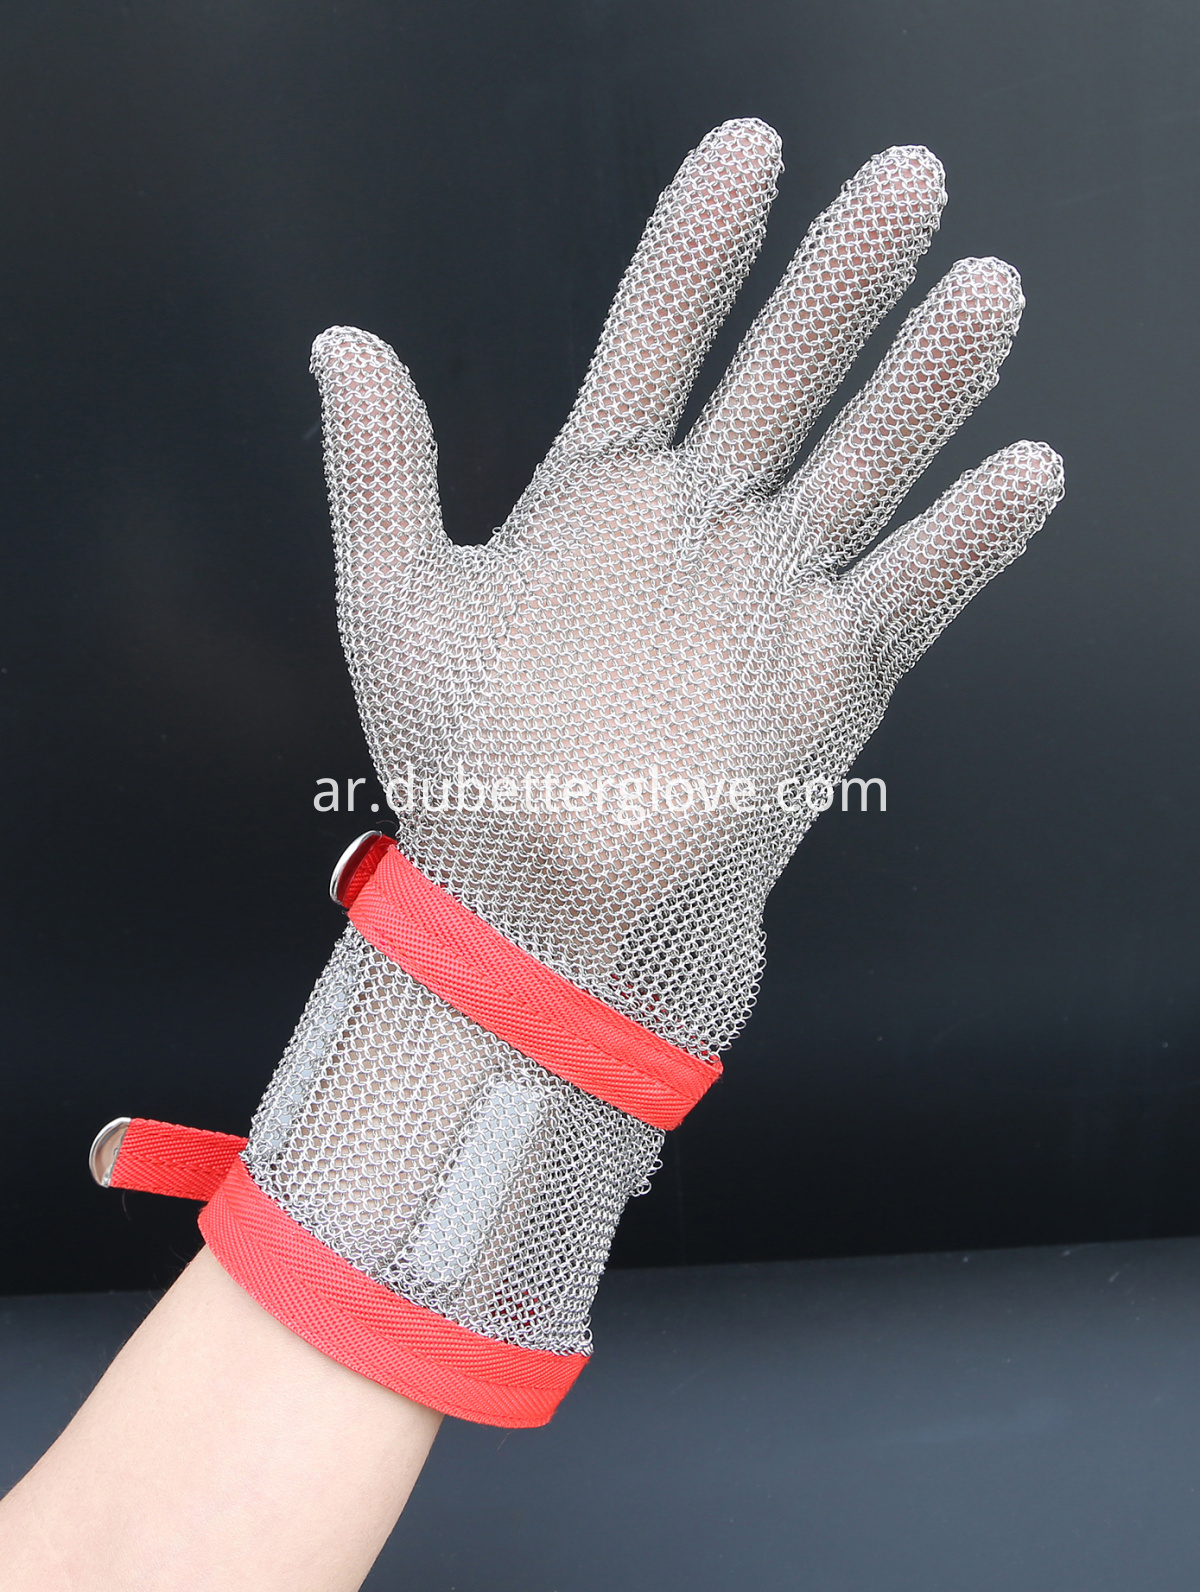 15 cm long cuff steel mesh gloves